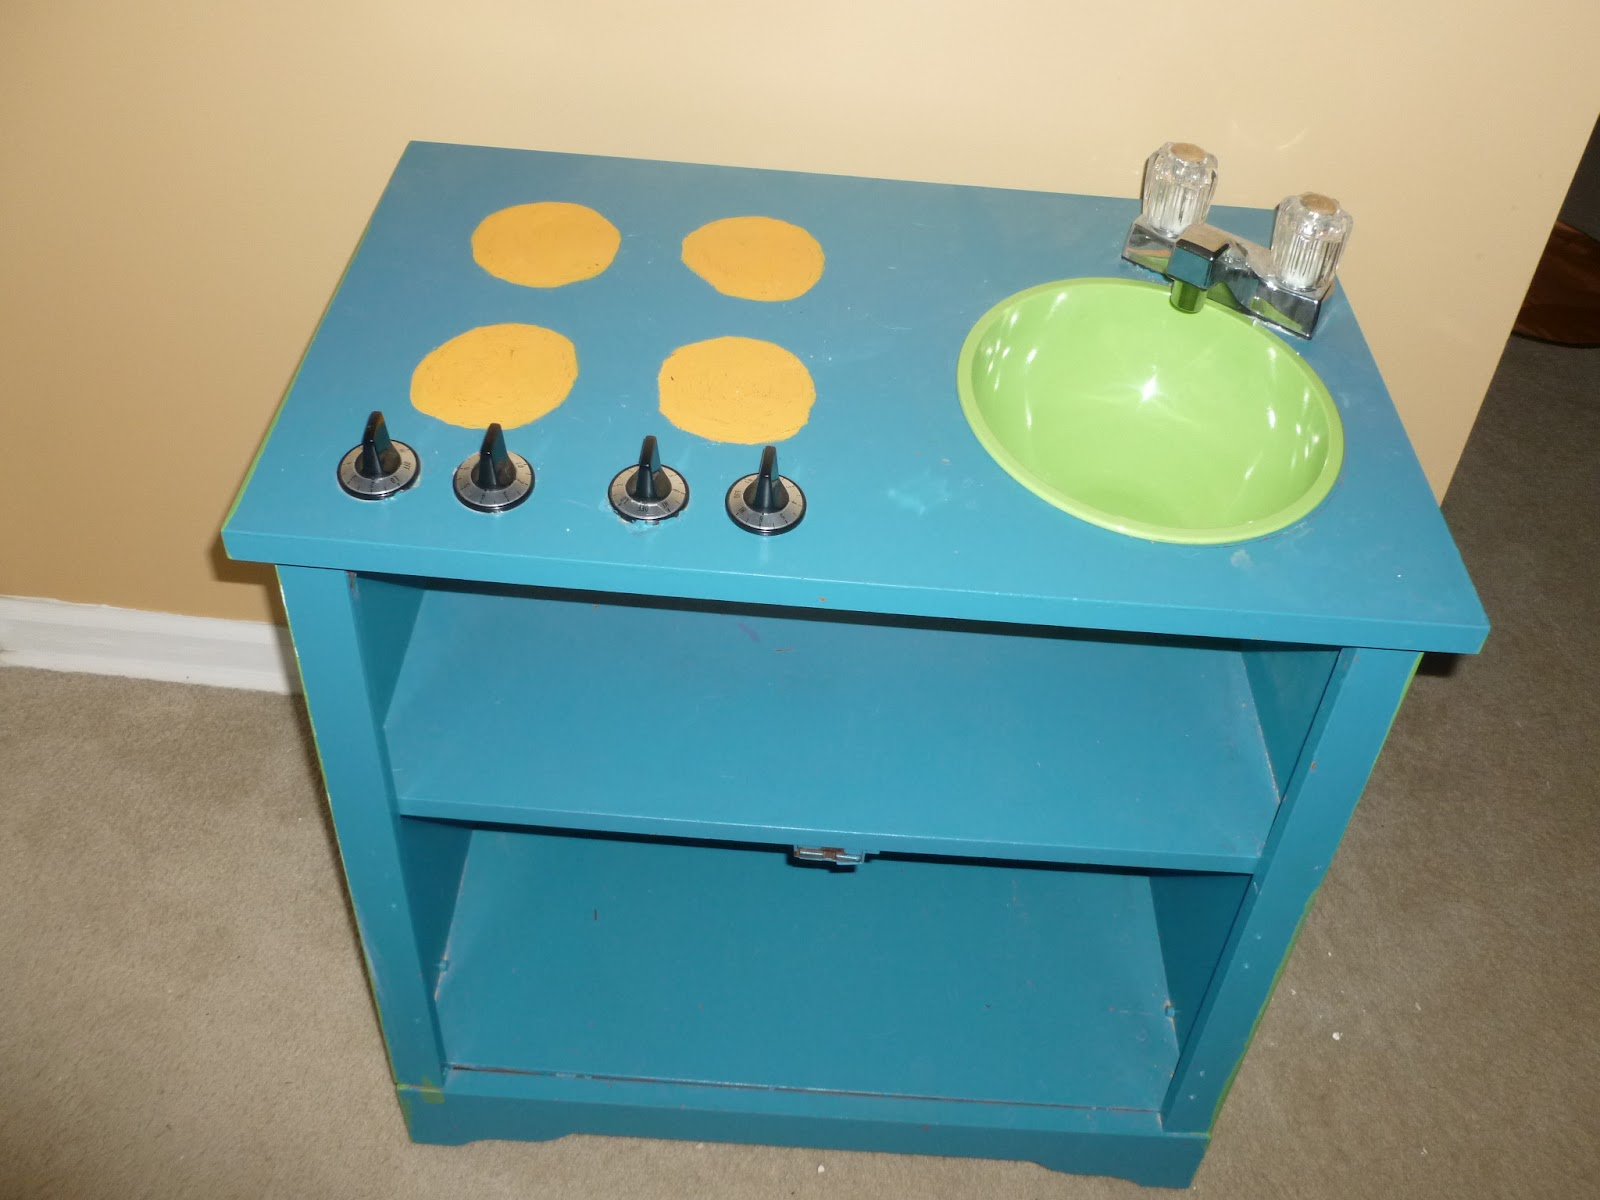 Pallet Furniture Gallery: Play Kitchen Out of TV Stand